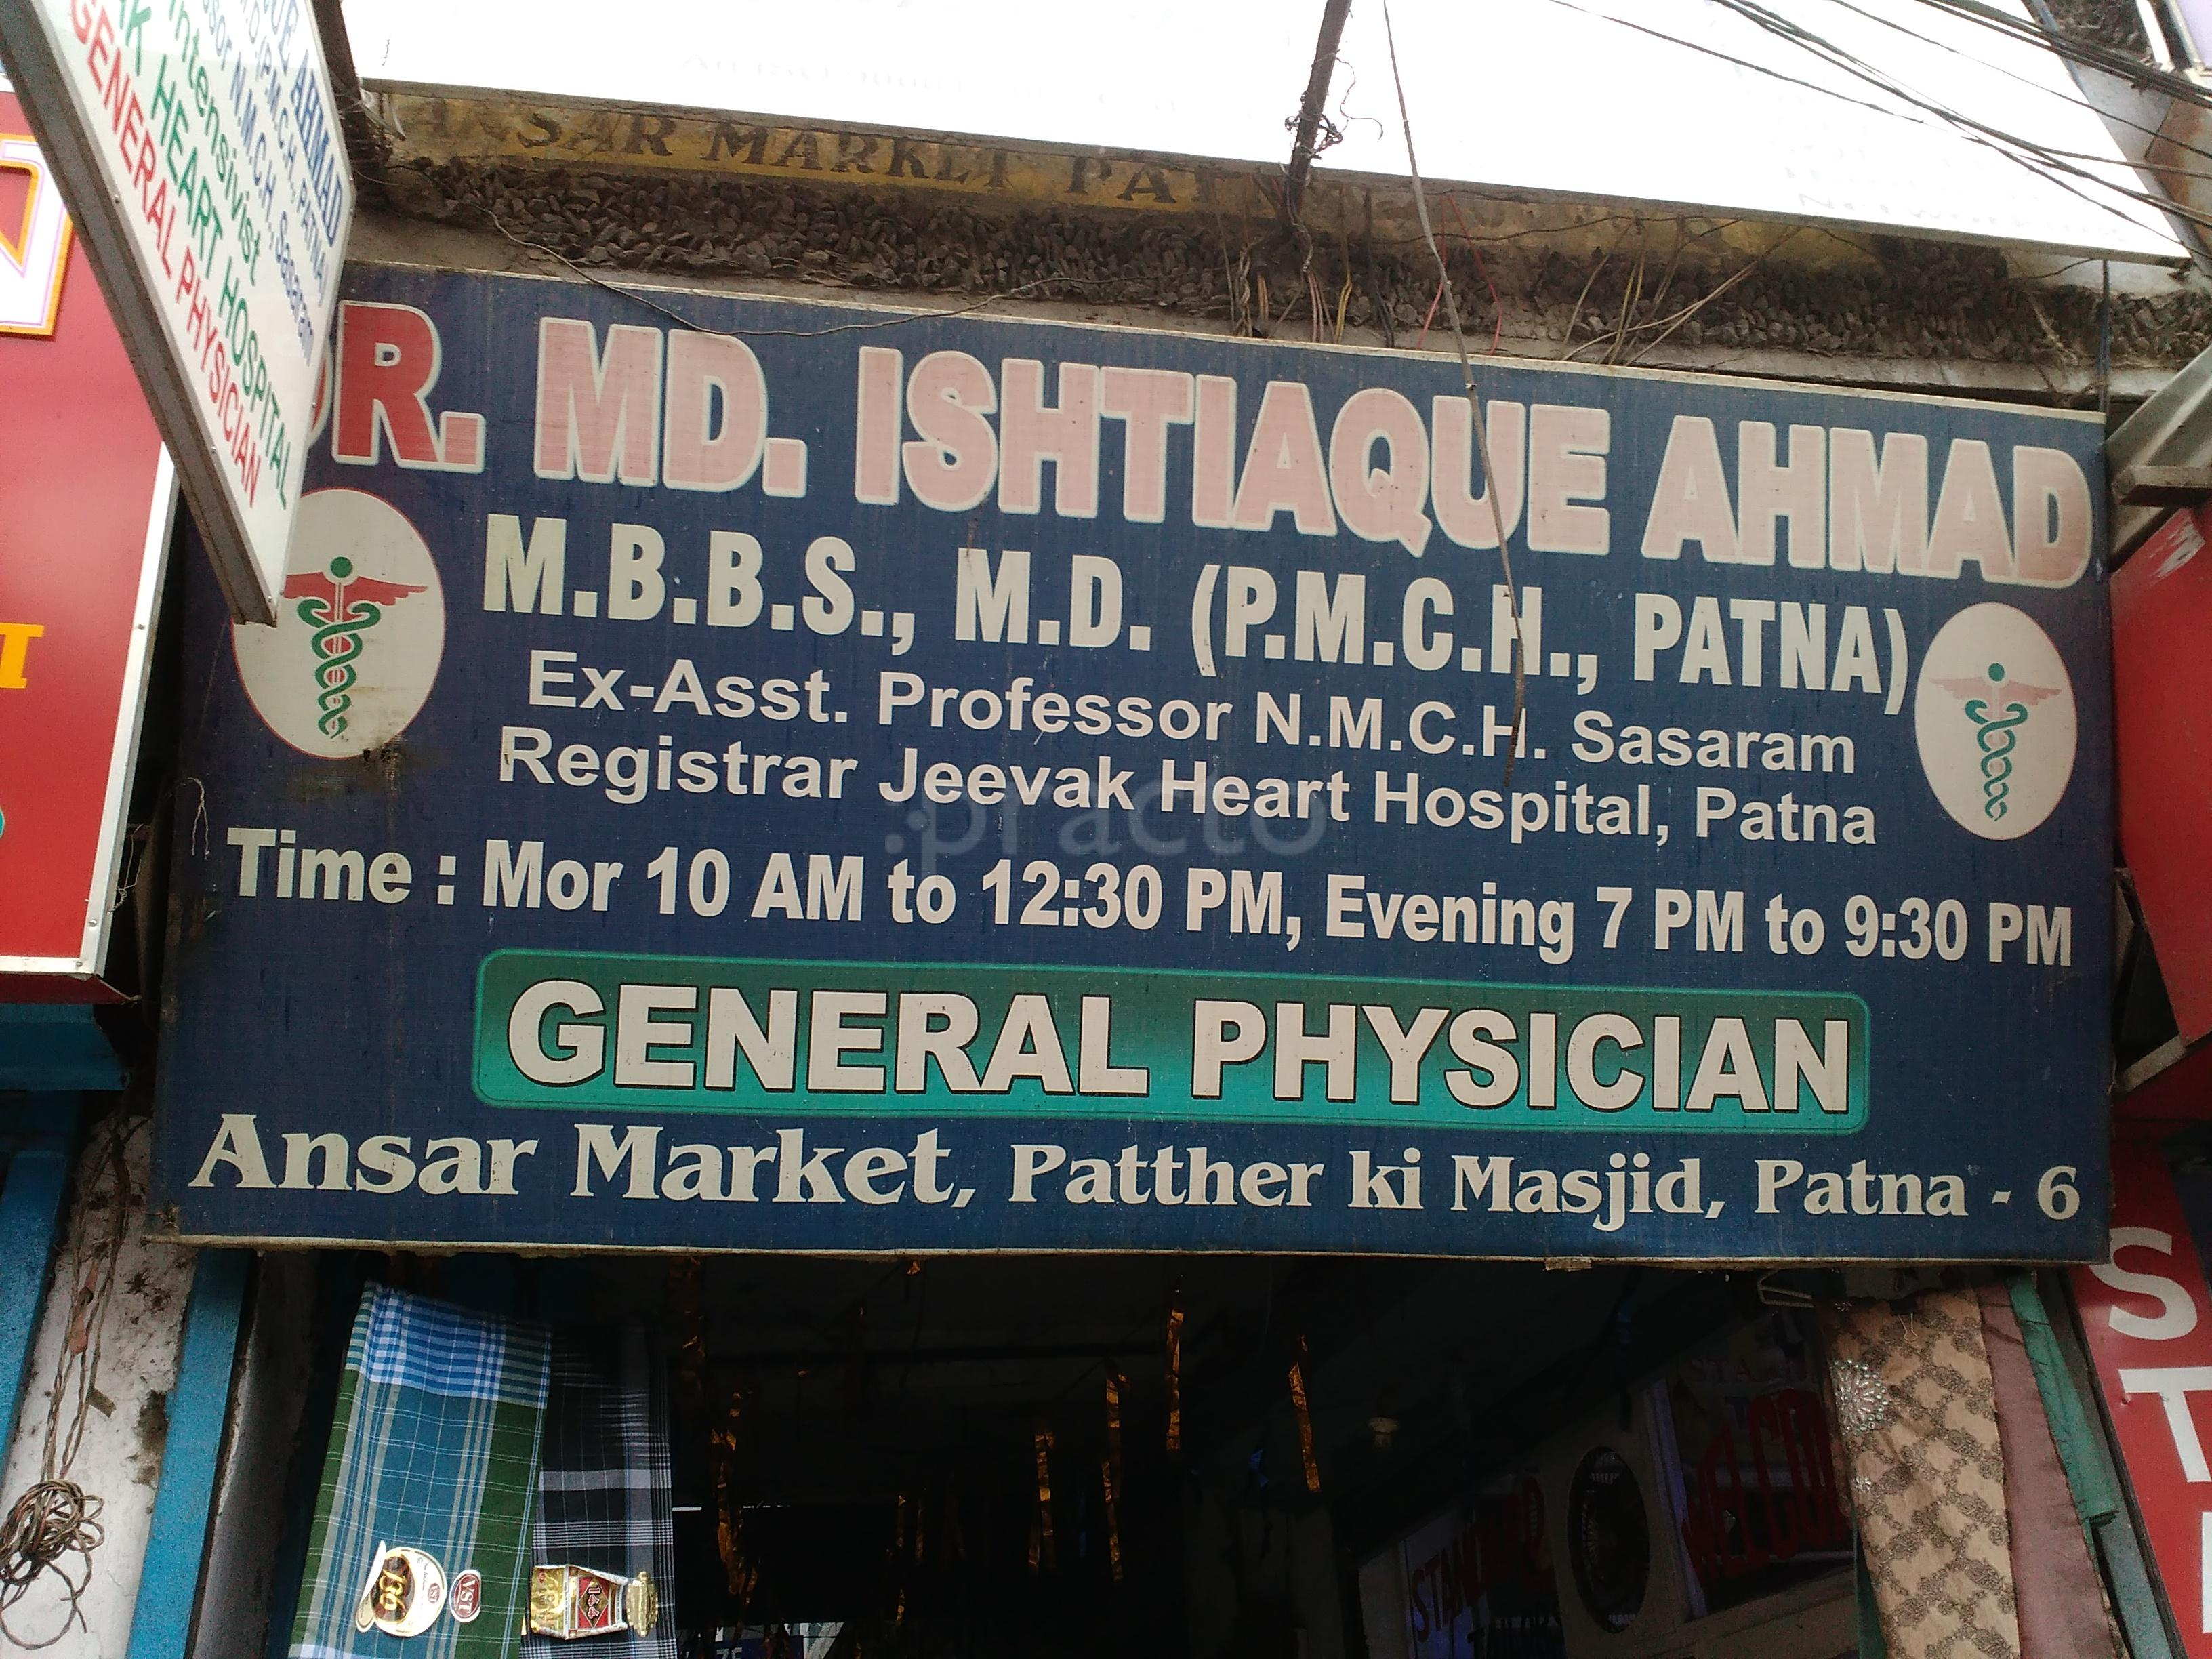 Doctors in Patna - Book Appointment Online, View Fees, Recommendations - Page 9 | Practo